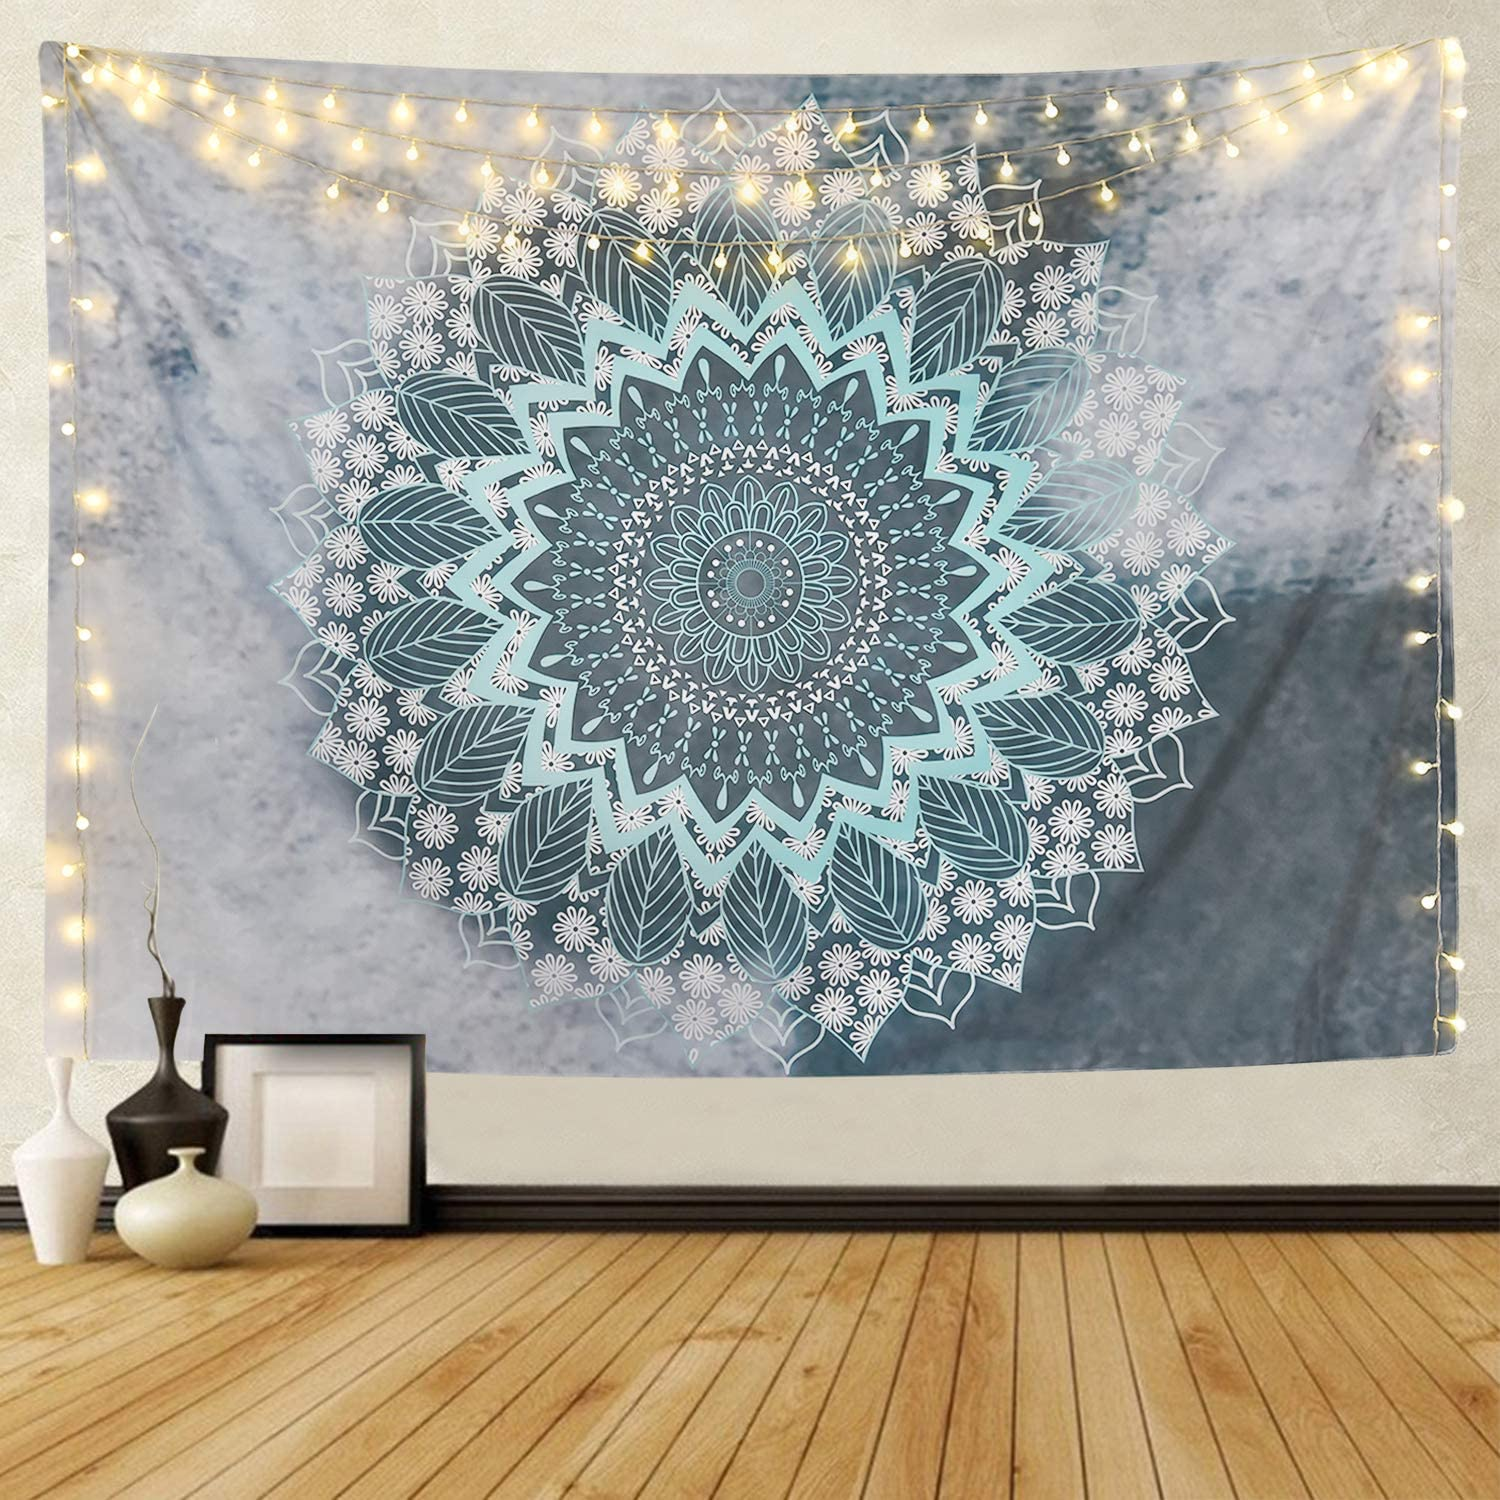 Sevenstars Mandala Tapestry Hippie Bohemian Tapestry Wall Hanging Flower Psychedelic Tapestry Indian Decor for Dorm Living Room Bedroom